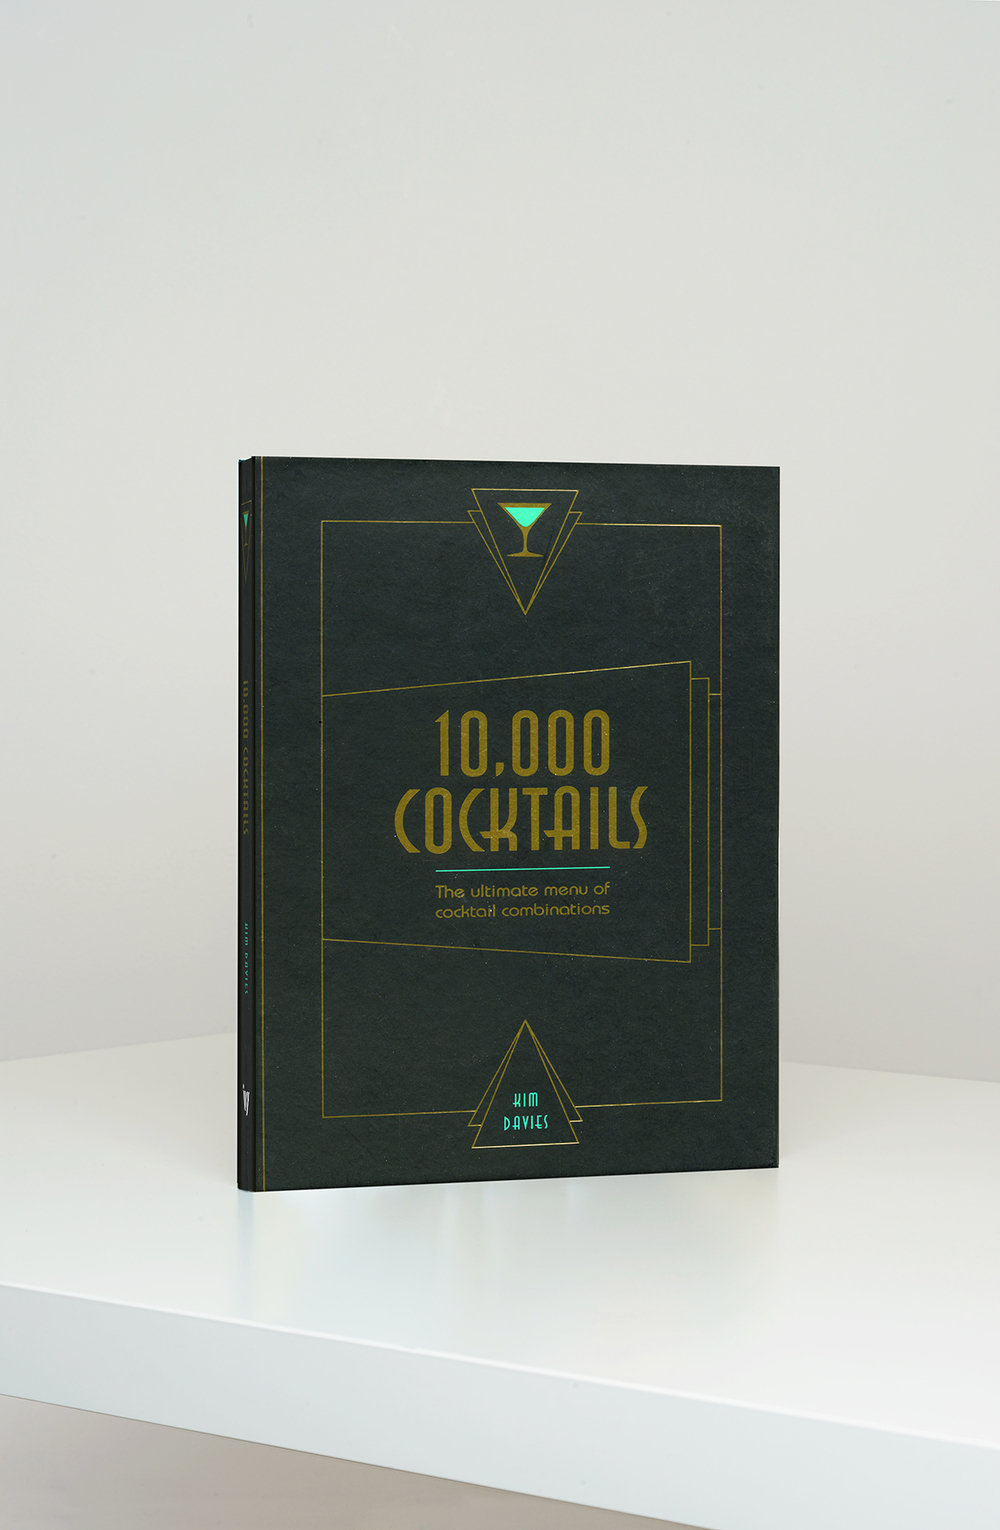 10,000 Cocktails. Commissioned by Ivy Press